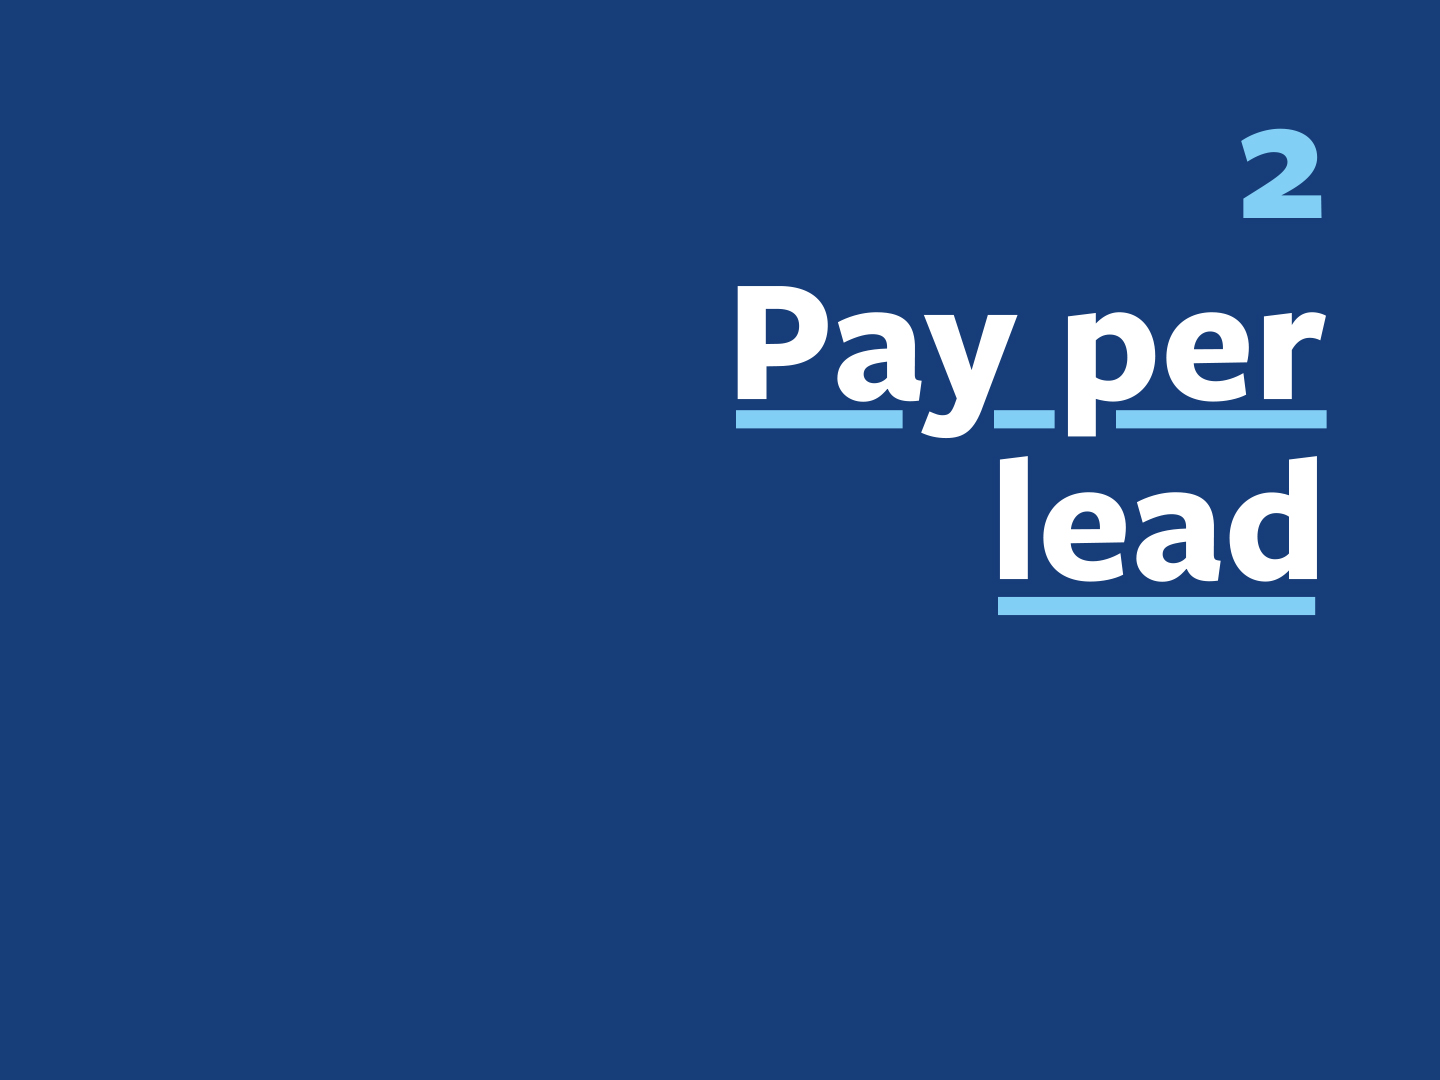 £3 / lead* - *Our pay per lead price is always based on 10% of your average customer spend. In this example, it's £30 average customer value = £3 per lead.Our unique pay per lead approach means you're only ever paying for the new customers we provide you with. We pay for all the ad spend that is needed to keep generating the leads as well as all the management and curation.So if you generate:100 leads = £3001,000 leads = £3,000 and so on.